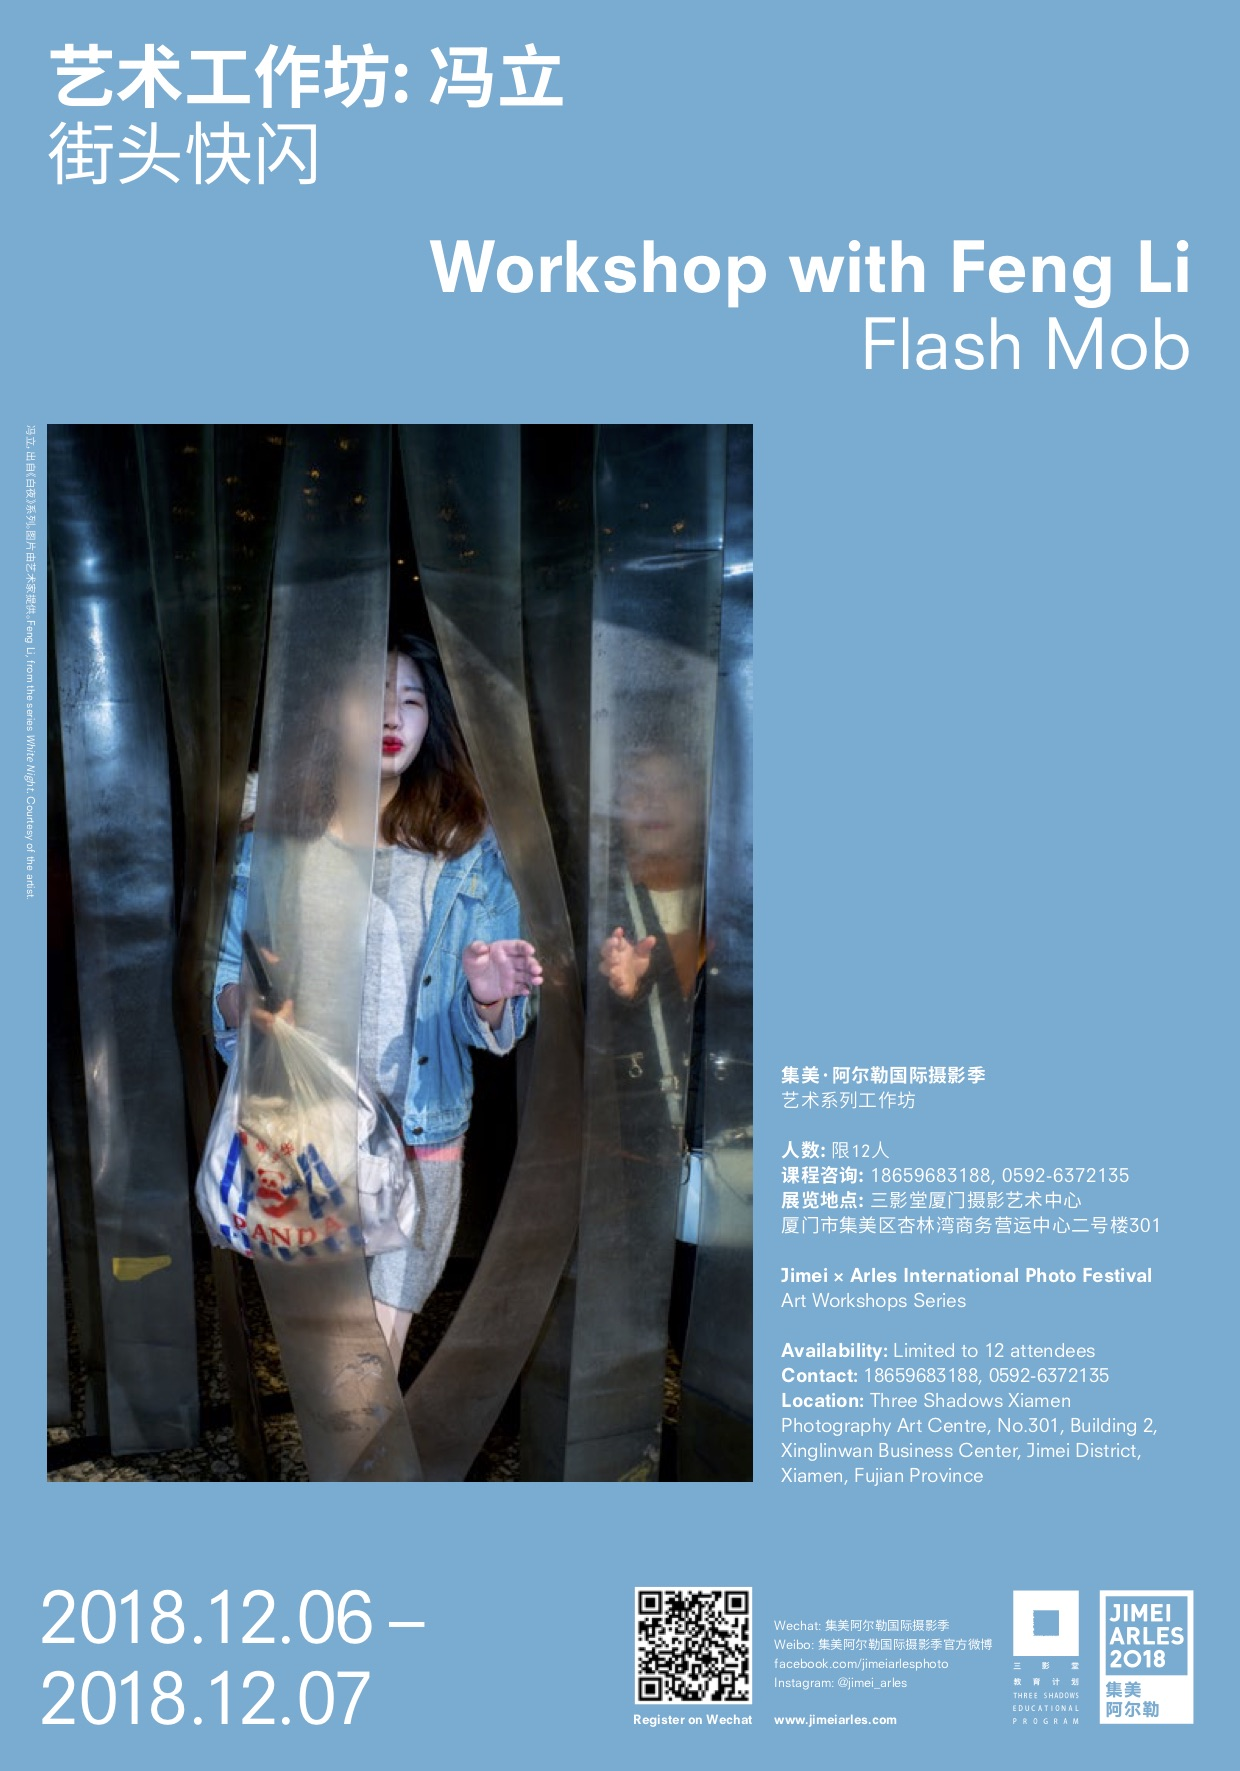 JIMEIARLES_Workshop Poster_Digital_Feng_Li.jpg